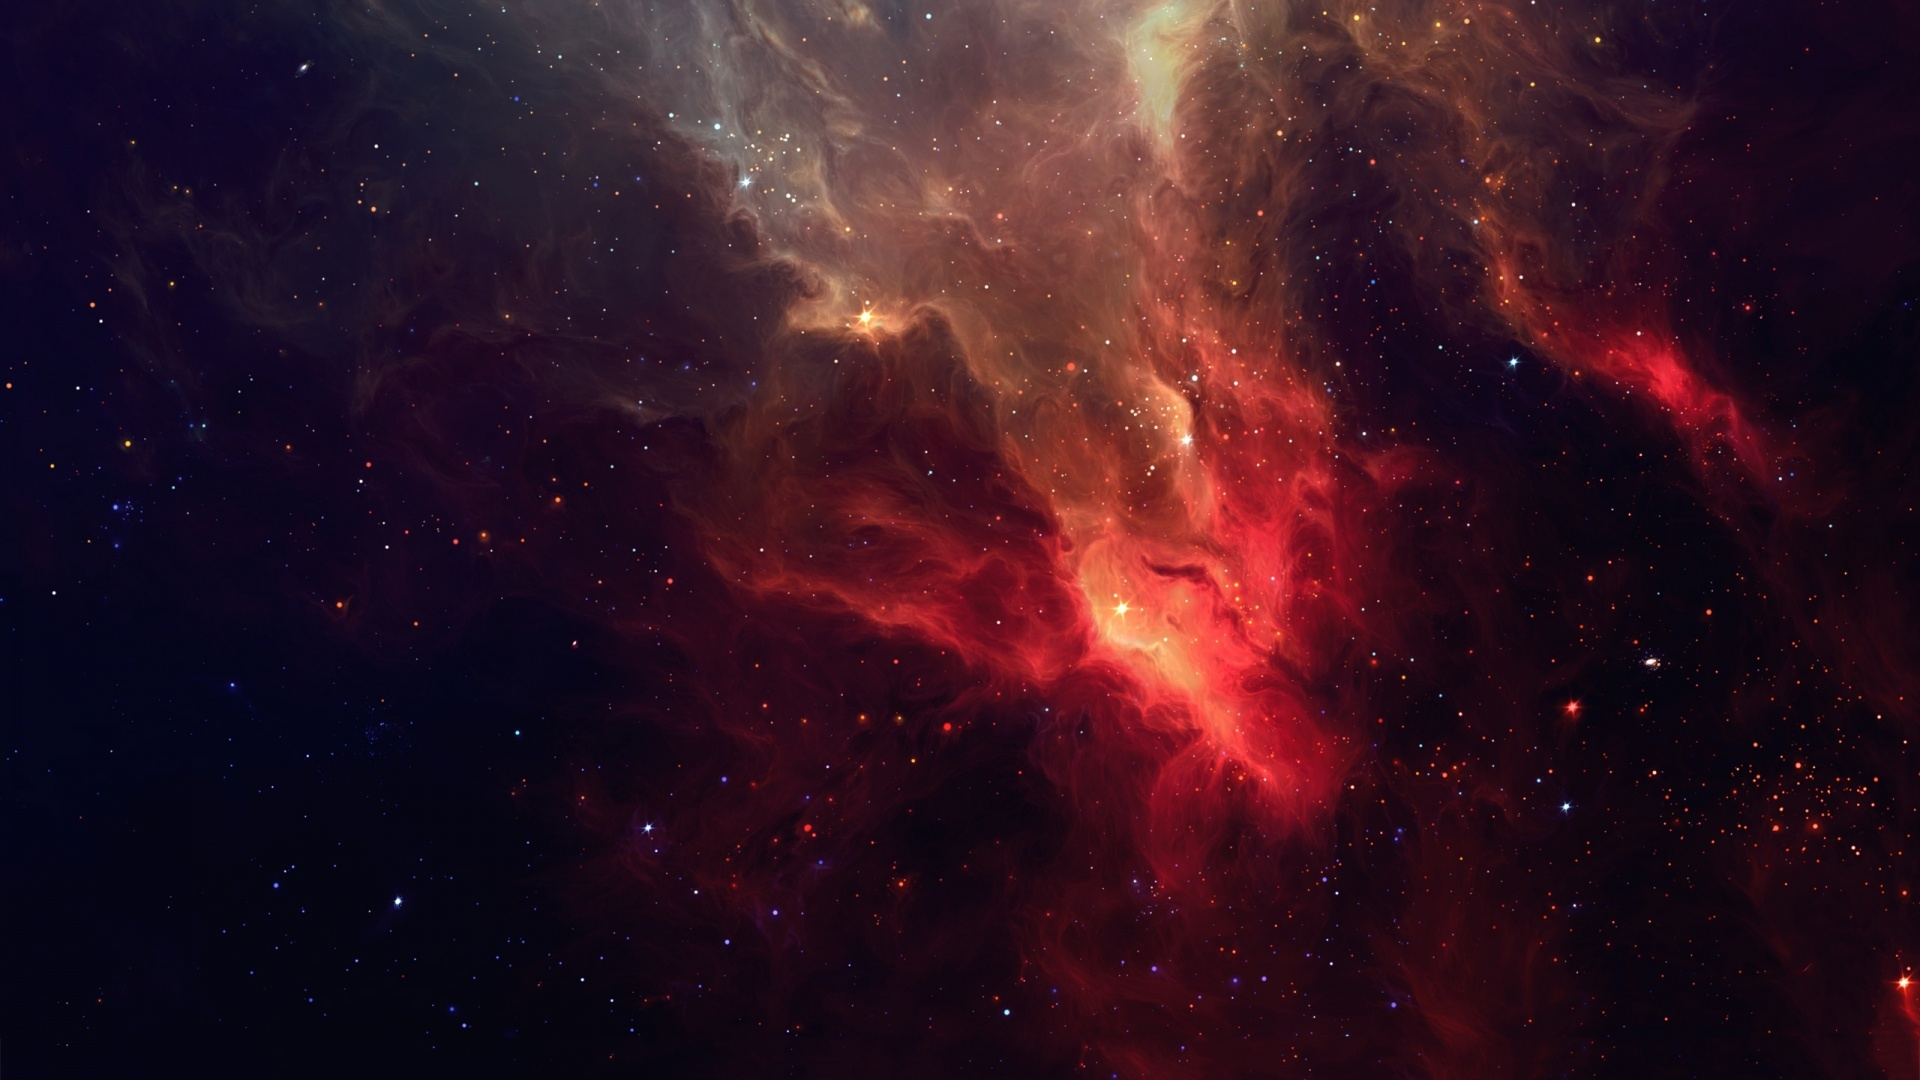 Black Red White Purple Space Abstract Nebula Alyson